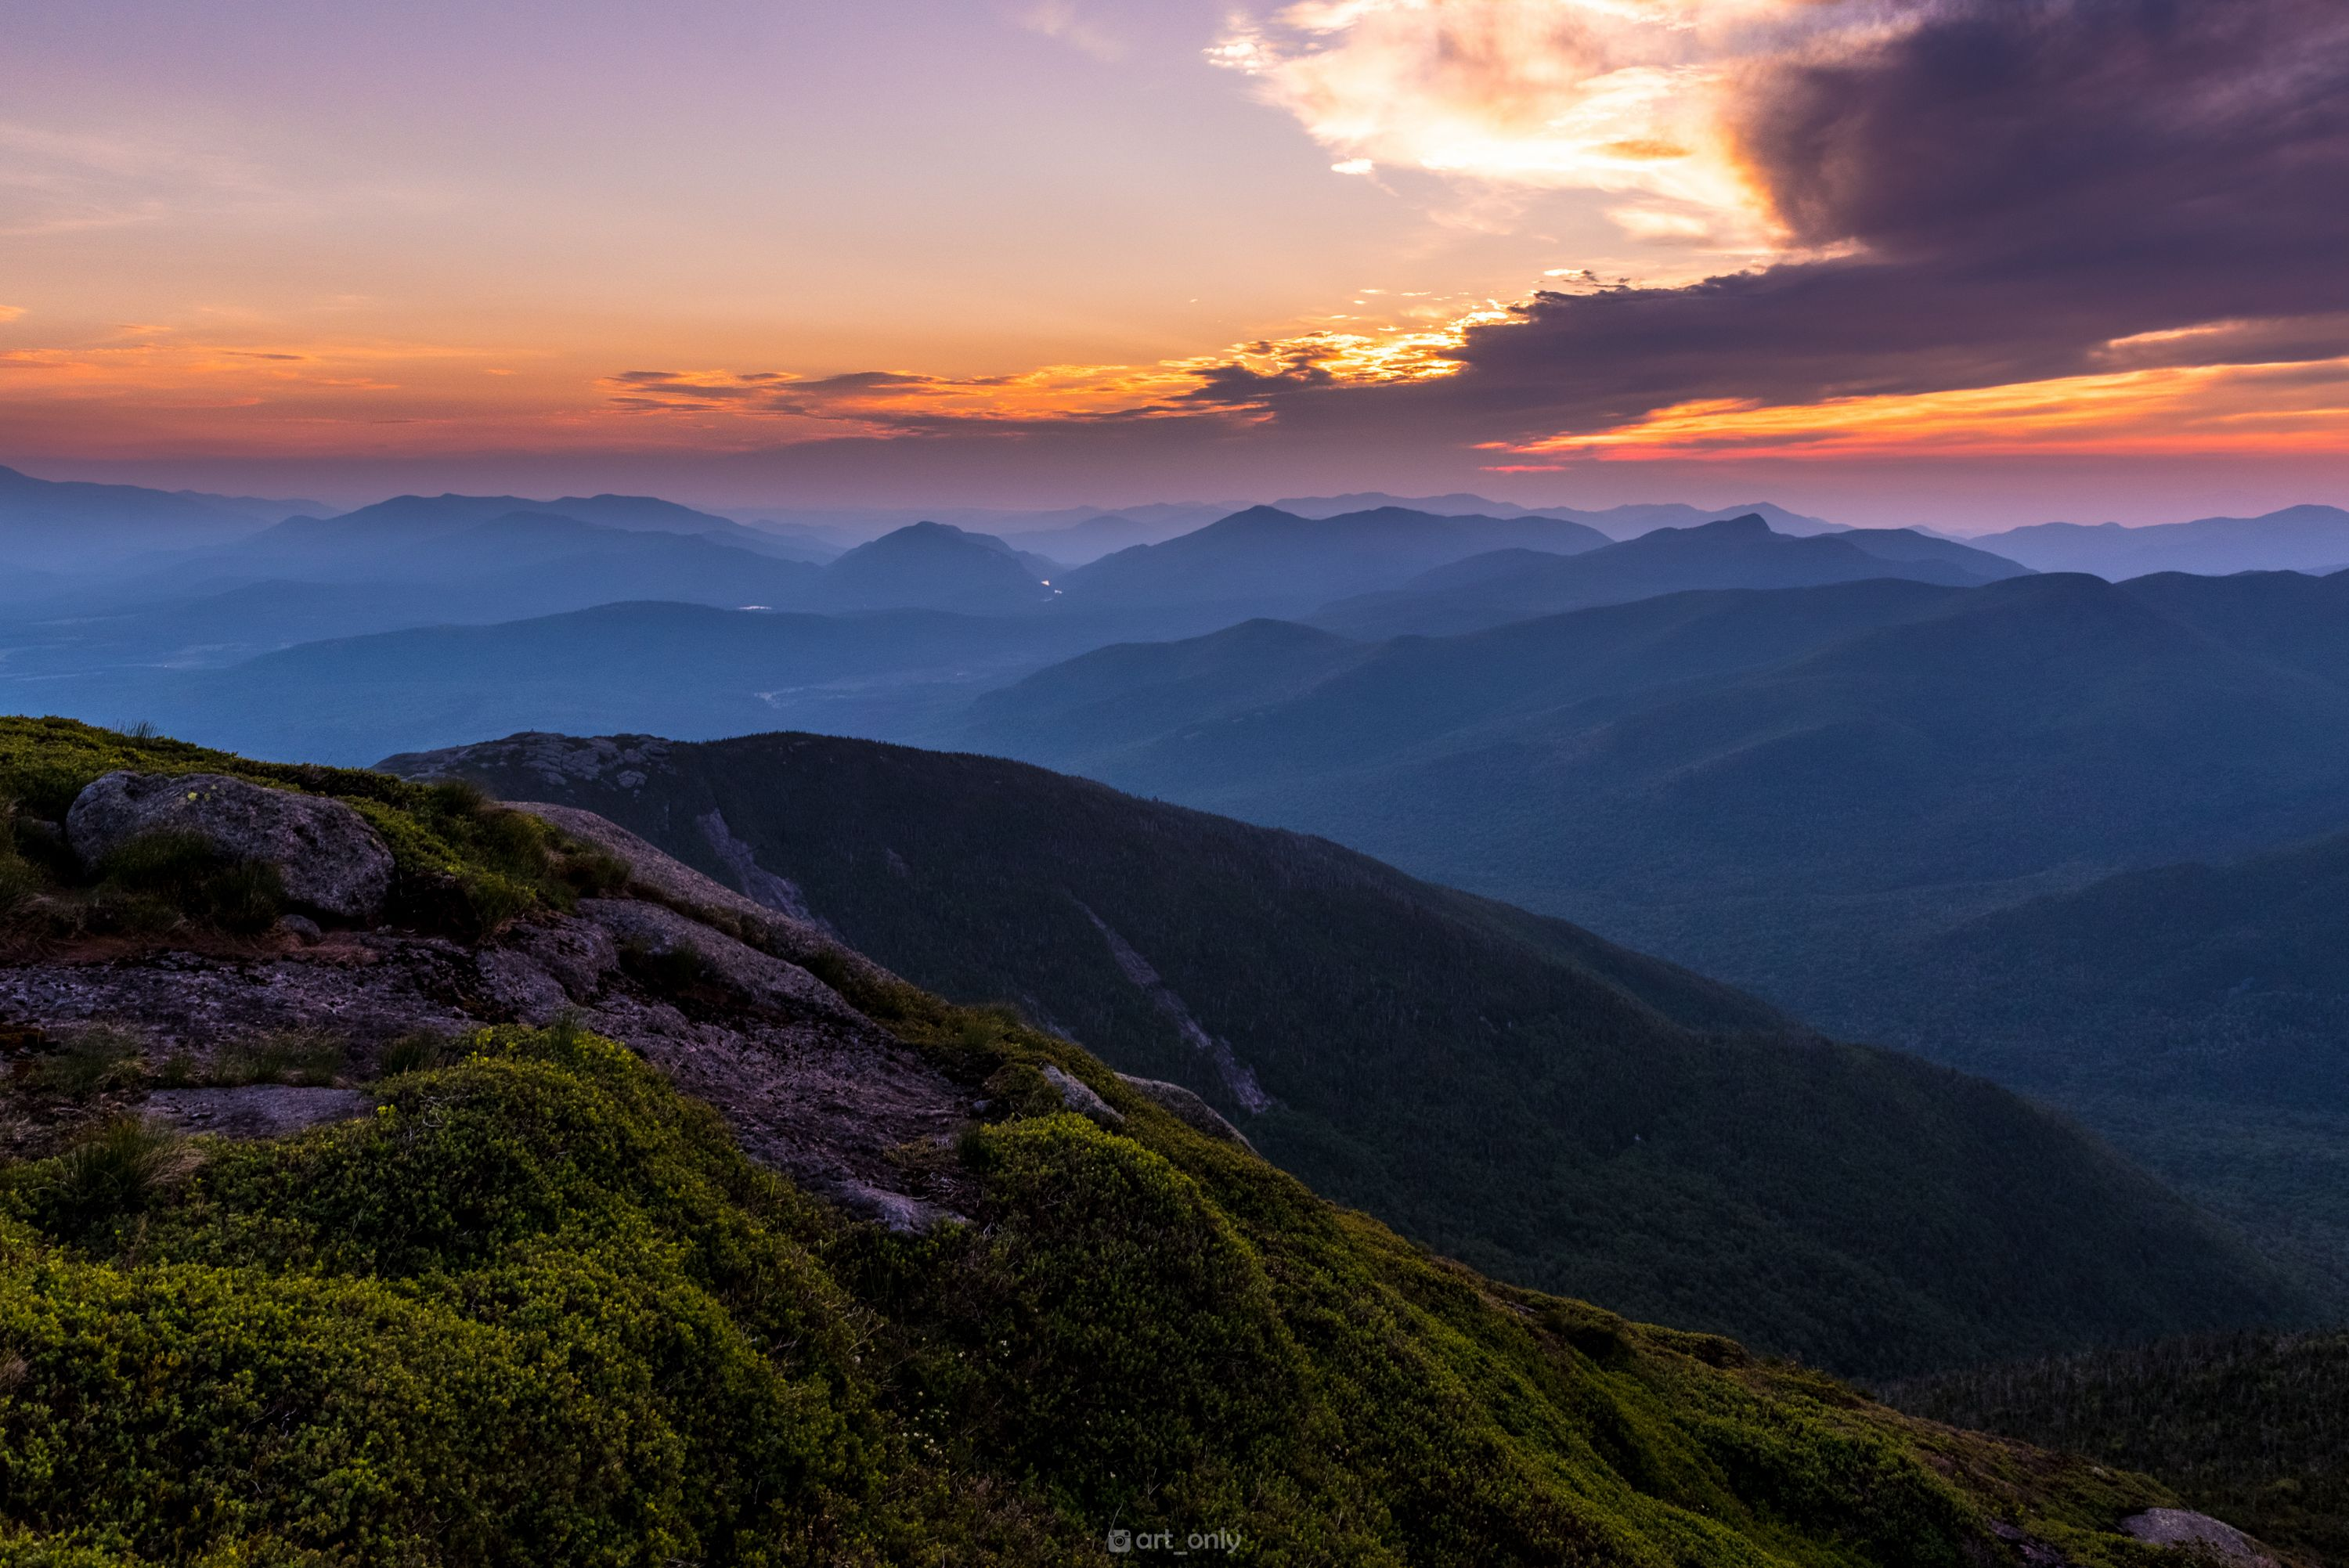 Yesterday I went on a 2am hike up the 2nd highest peak in New York so I could get there in time for sunrise [3000x2003][OC] #nature #beauty